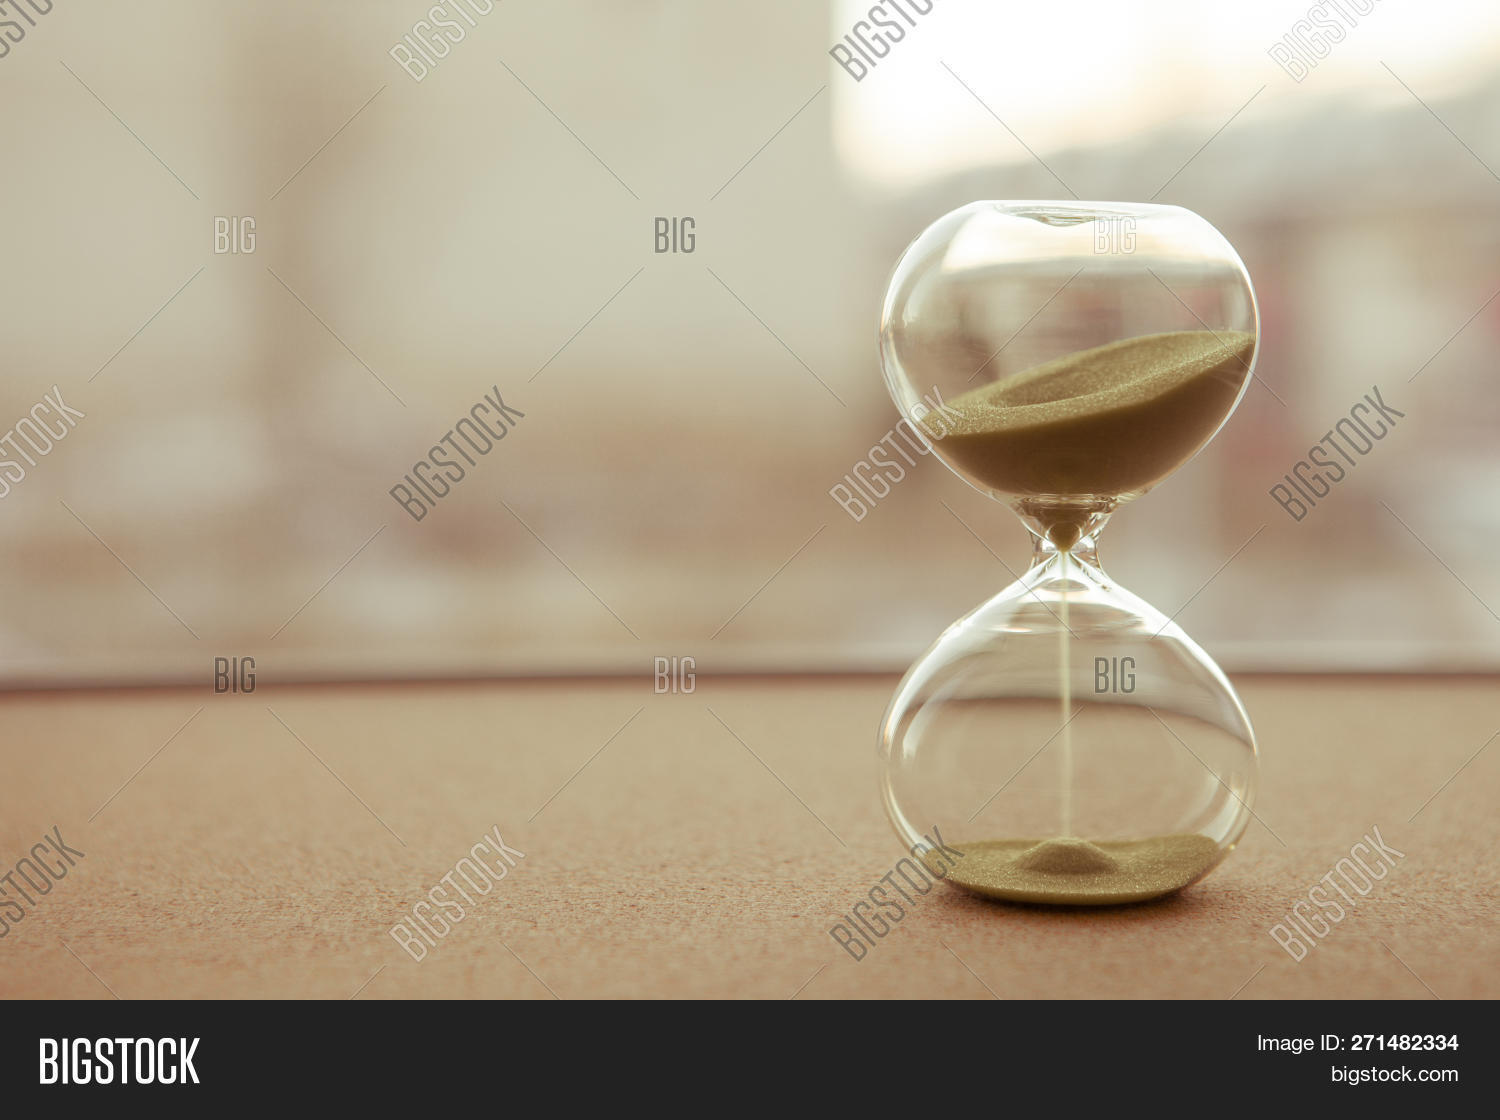 antique,business,clock,concept,countdown,dark,dawn,deadline,fall,flow,glass,hour,hourglass,instrument,life,light,live,management,mean,minute,nature,office,passing,past,patience,pressure,relax,rise,romantic,running,sand,sandglass,sea,sign,silhouette,sky,space,speed,stress,success,sun,sunrise,sunset,symbol,time,timer,urgency,urgent,vintage,watch